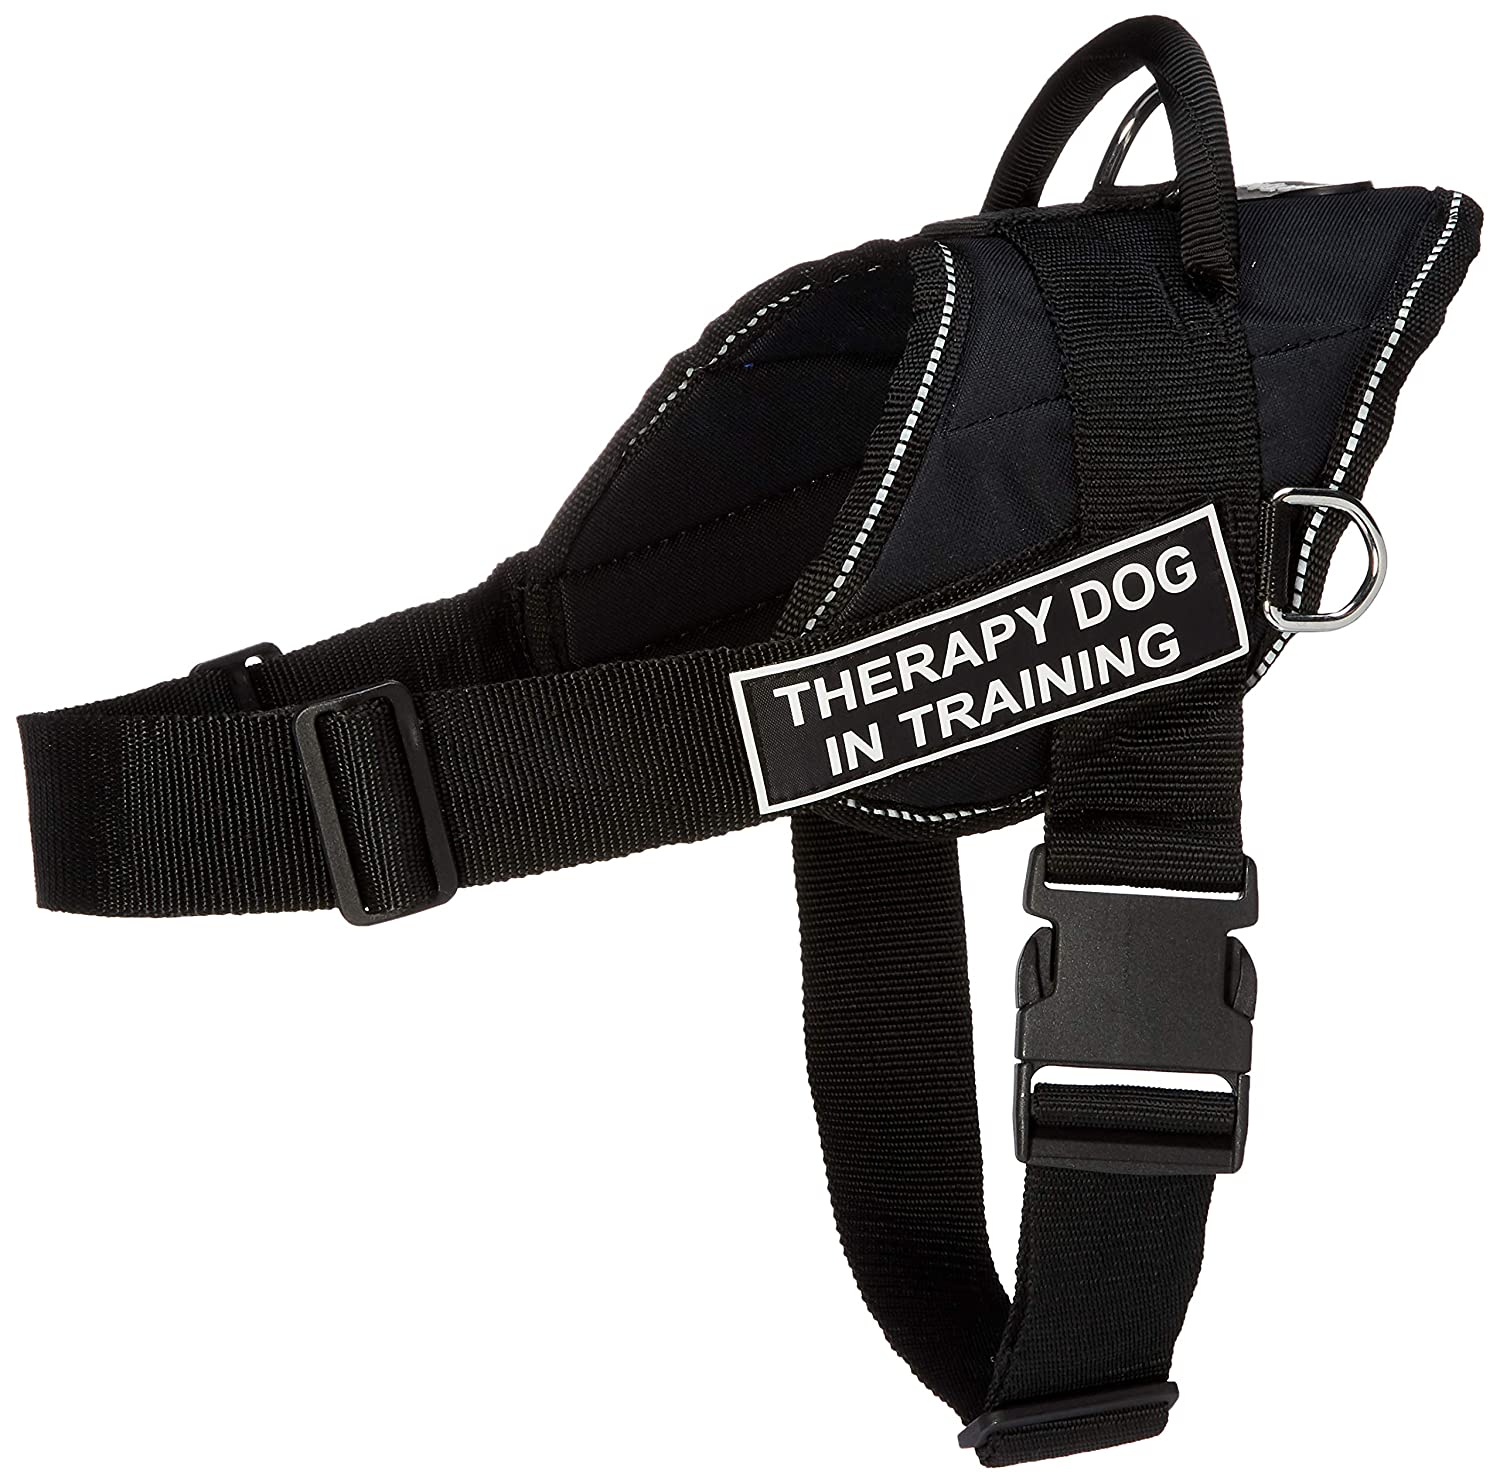 M Dean & Tyler Fun Works Harness, Therapy Dog In Training, Black with Reflective Trim, Medium, Fits Girth Size  28-Inch to 34-Inch